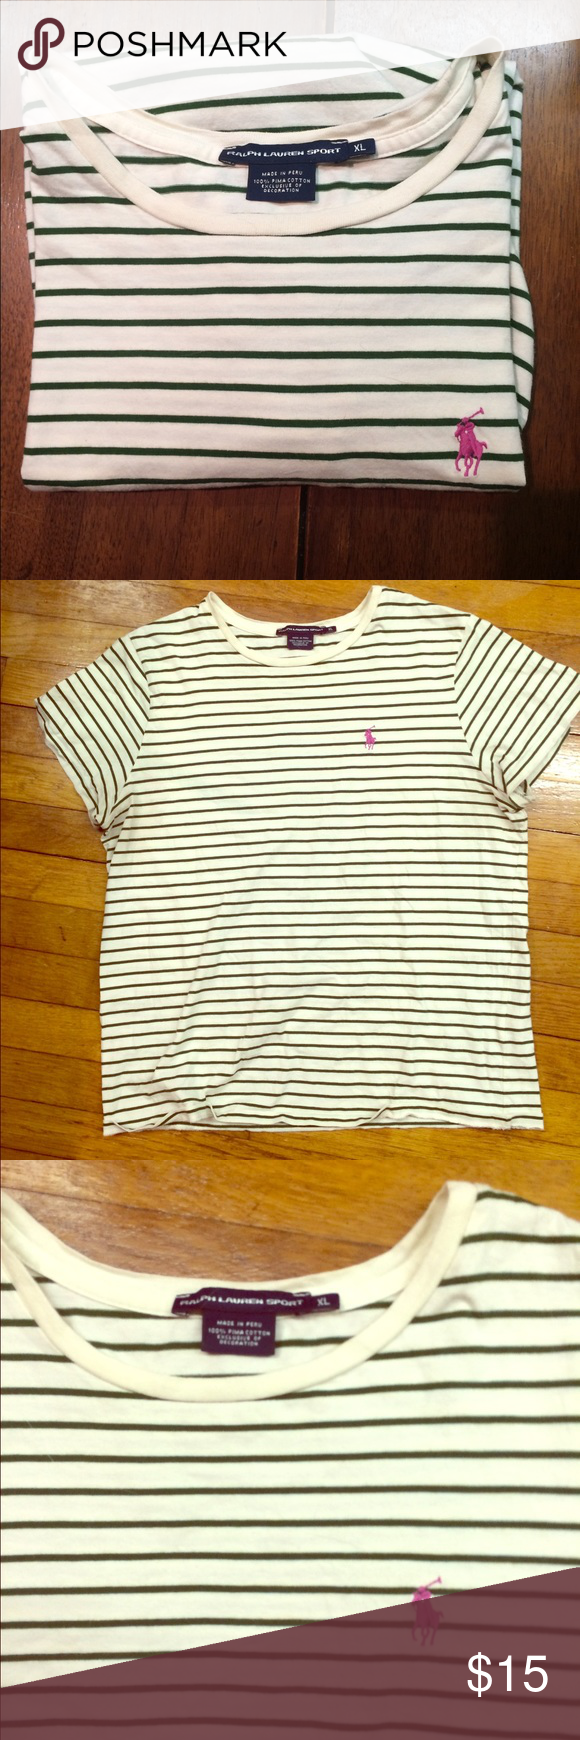 Unique Ralph Lauren sport tee Super comfy green and cream stripe t with fuchsia polo emblem.  Size XL but fits a size M  if you like a loose fit. Polo by Ralph Lauren Tops Tees - Short Sleeve